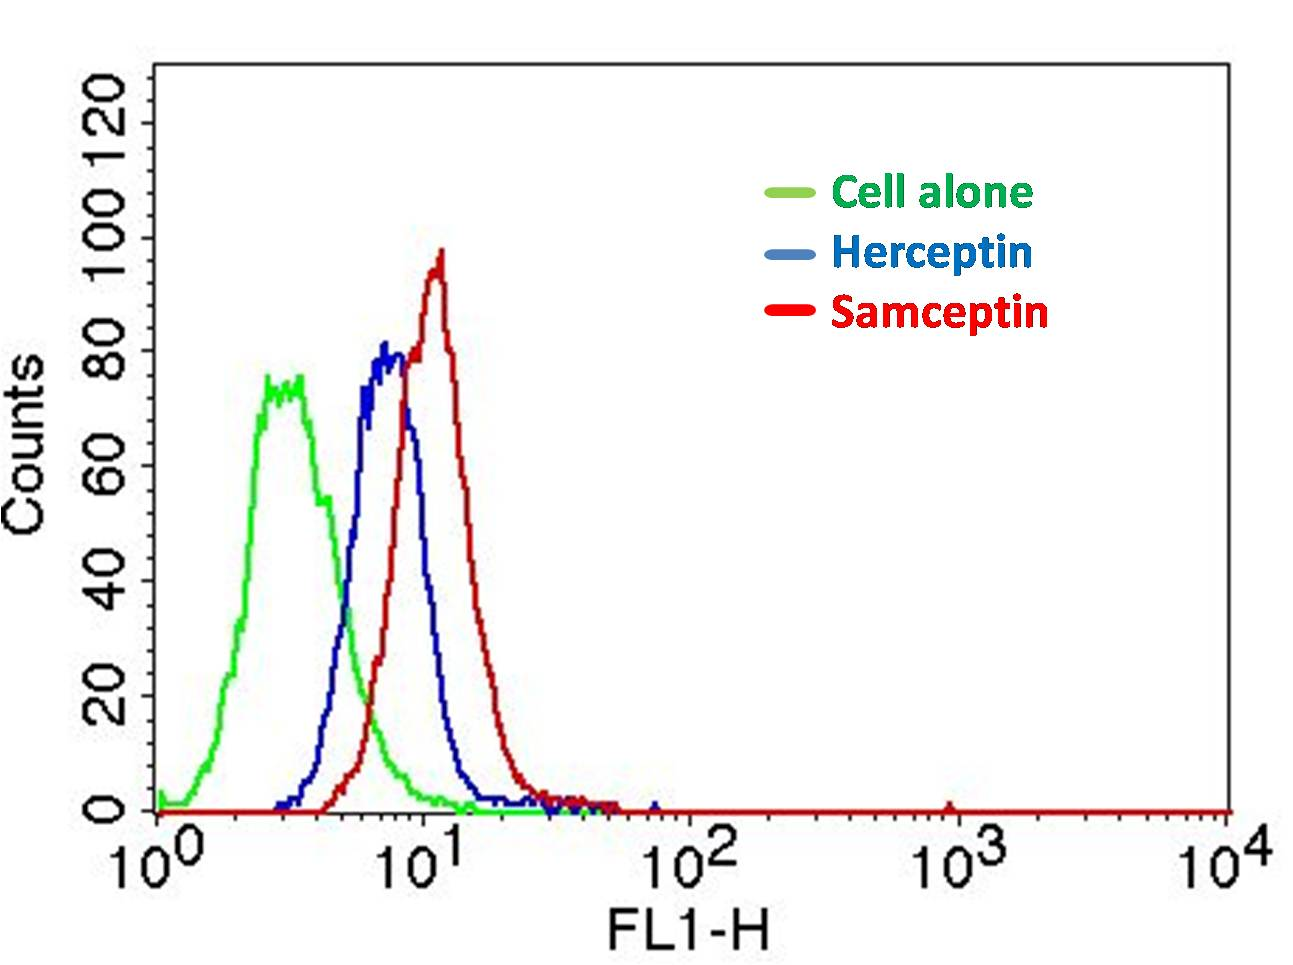 Figure-5: Epitope binding study by flow cytometric analysis.  BT-474 cells expressing HER2 antigen were treated with  Herceptin and Samceptin (2 µg/10^6 Cells). Surface staining was done using FITC conjugated antibodies.